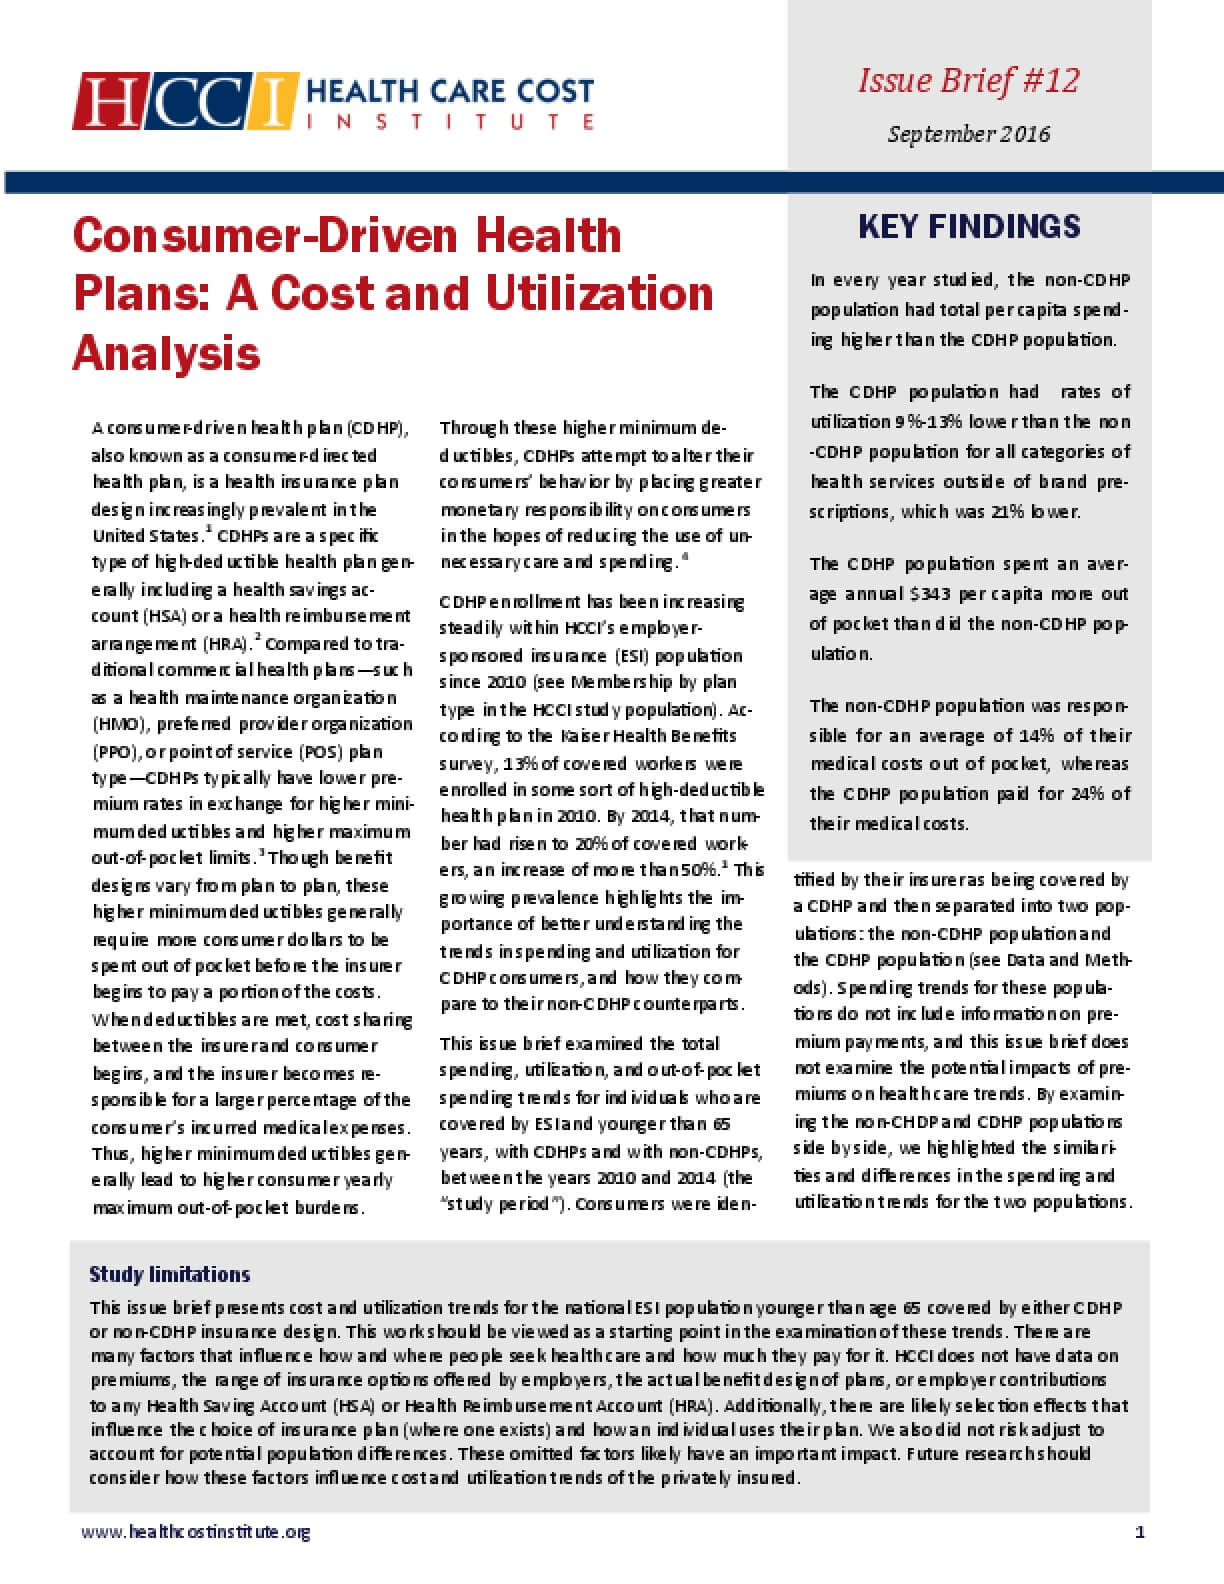 Consumer-Driven Health Plans: A Cost and Utilization Analysis